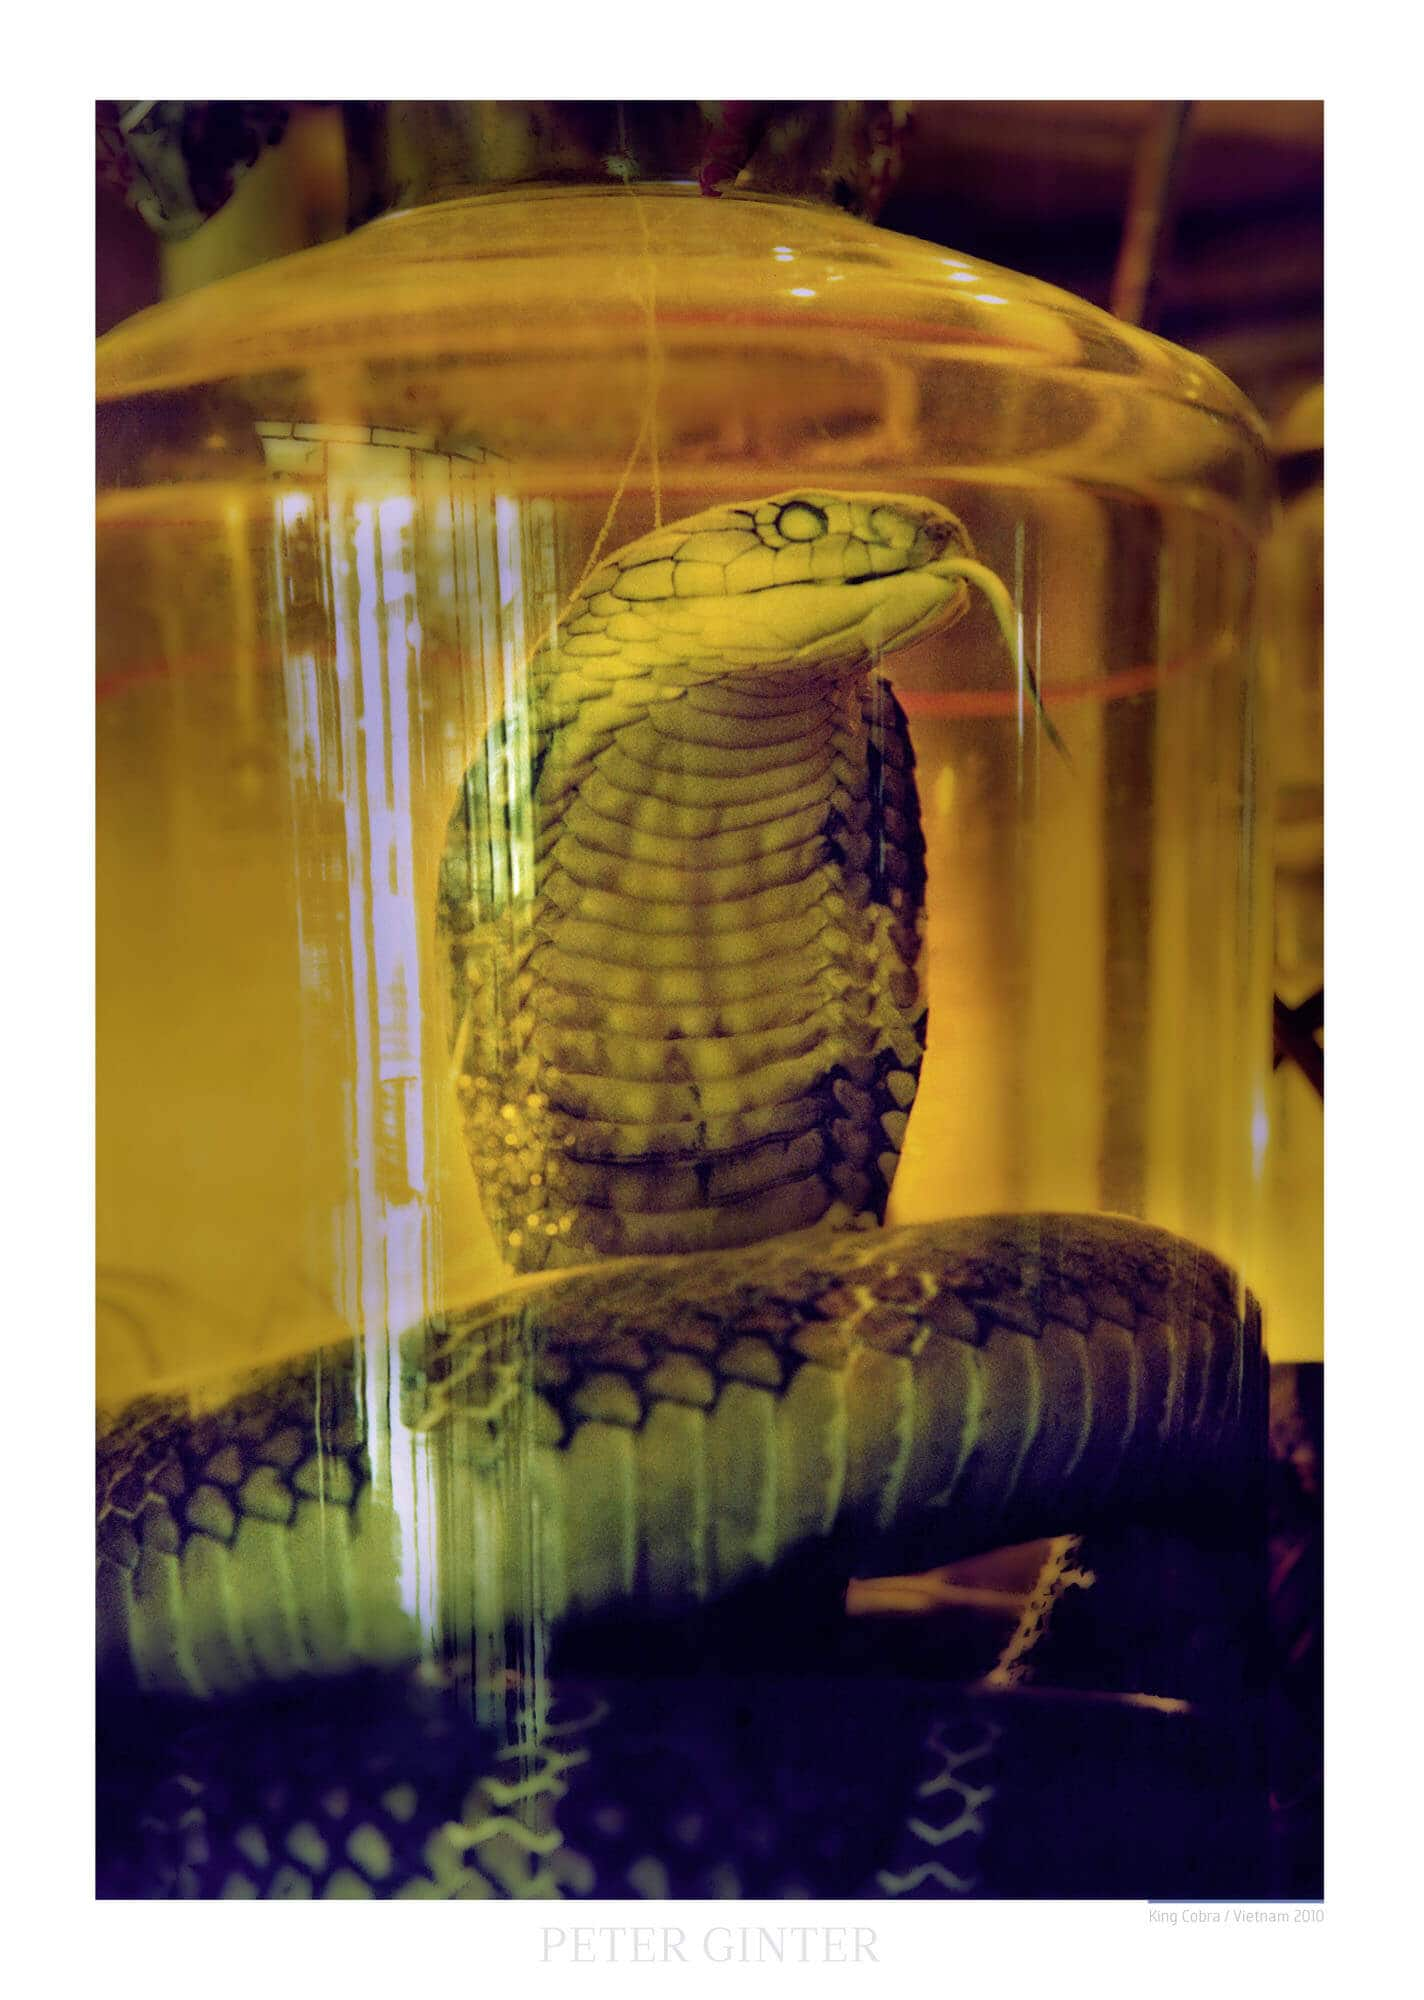 King Cobra / Vietnam 2010 © Peter Ginter